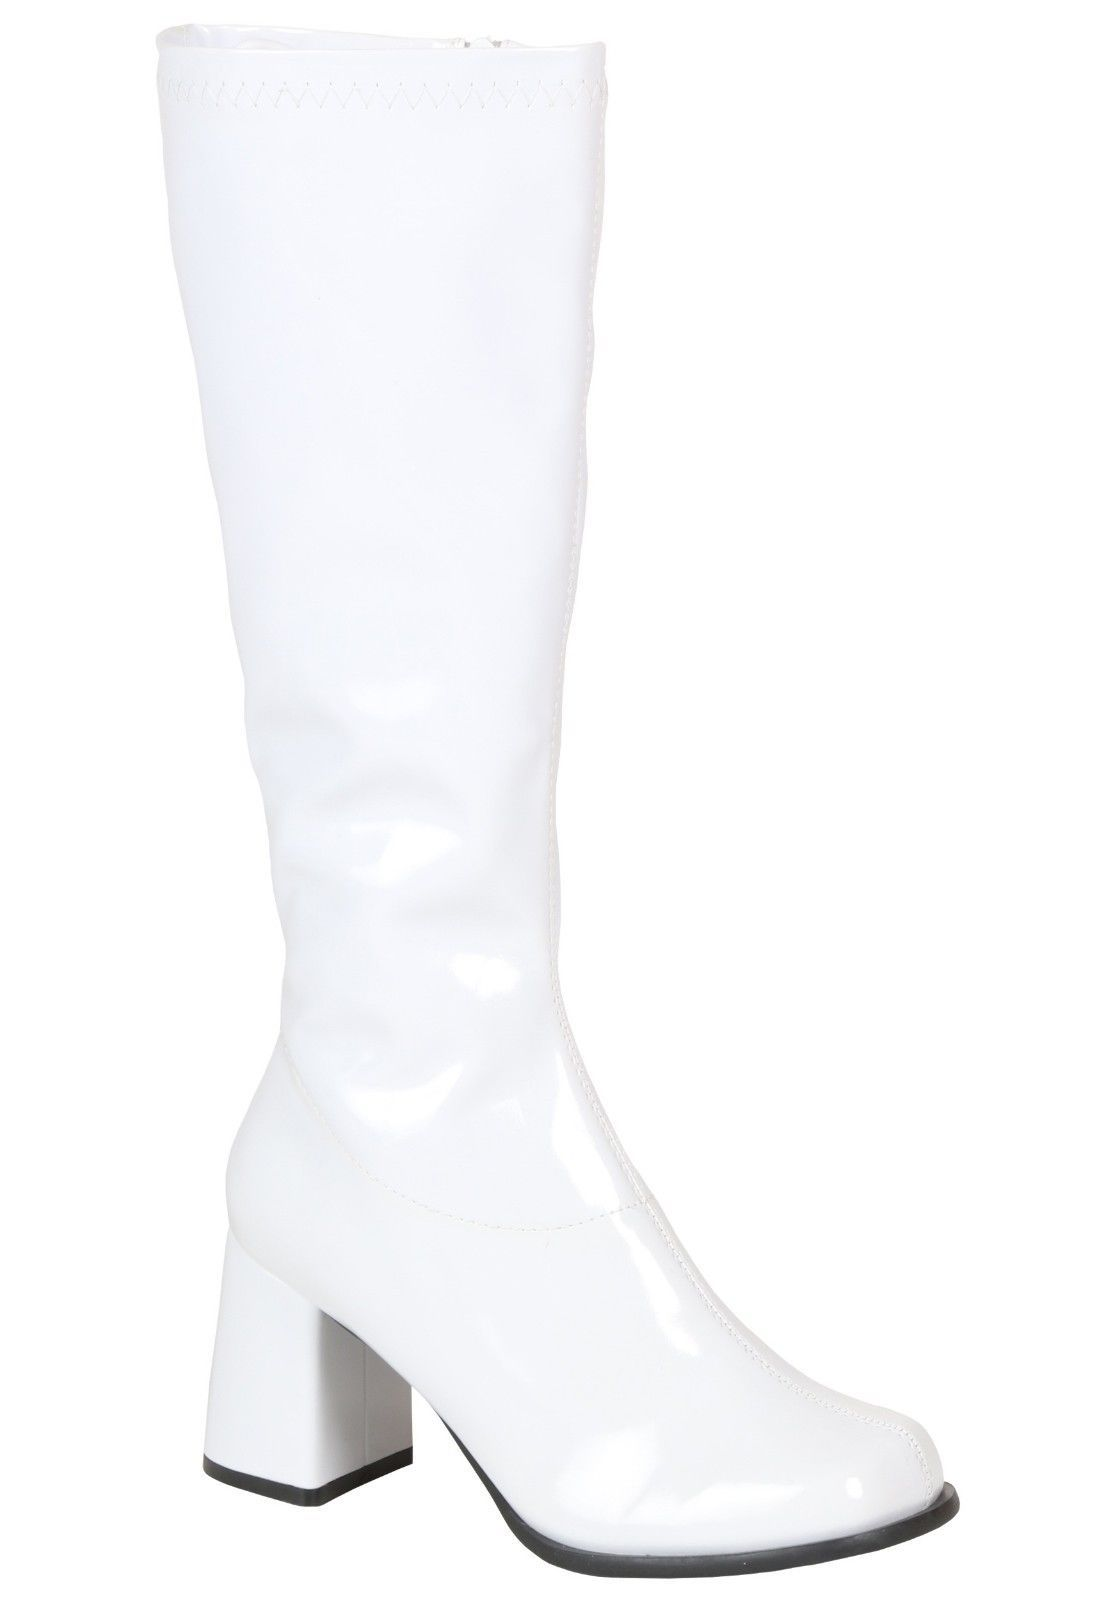 46626dae096 Girls White Gogo Boots 70's - Size Child 2 And 3 (Run Small ...